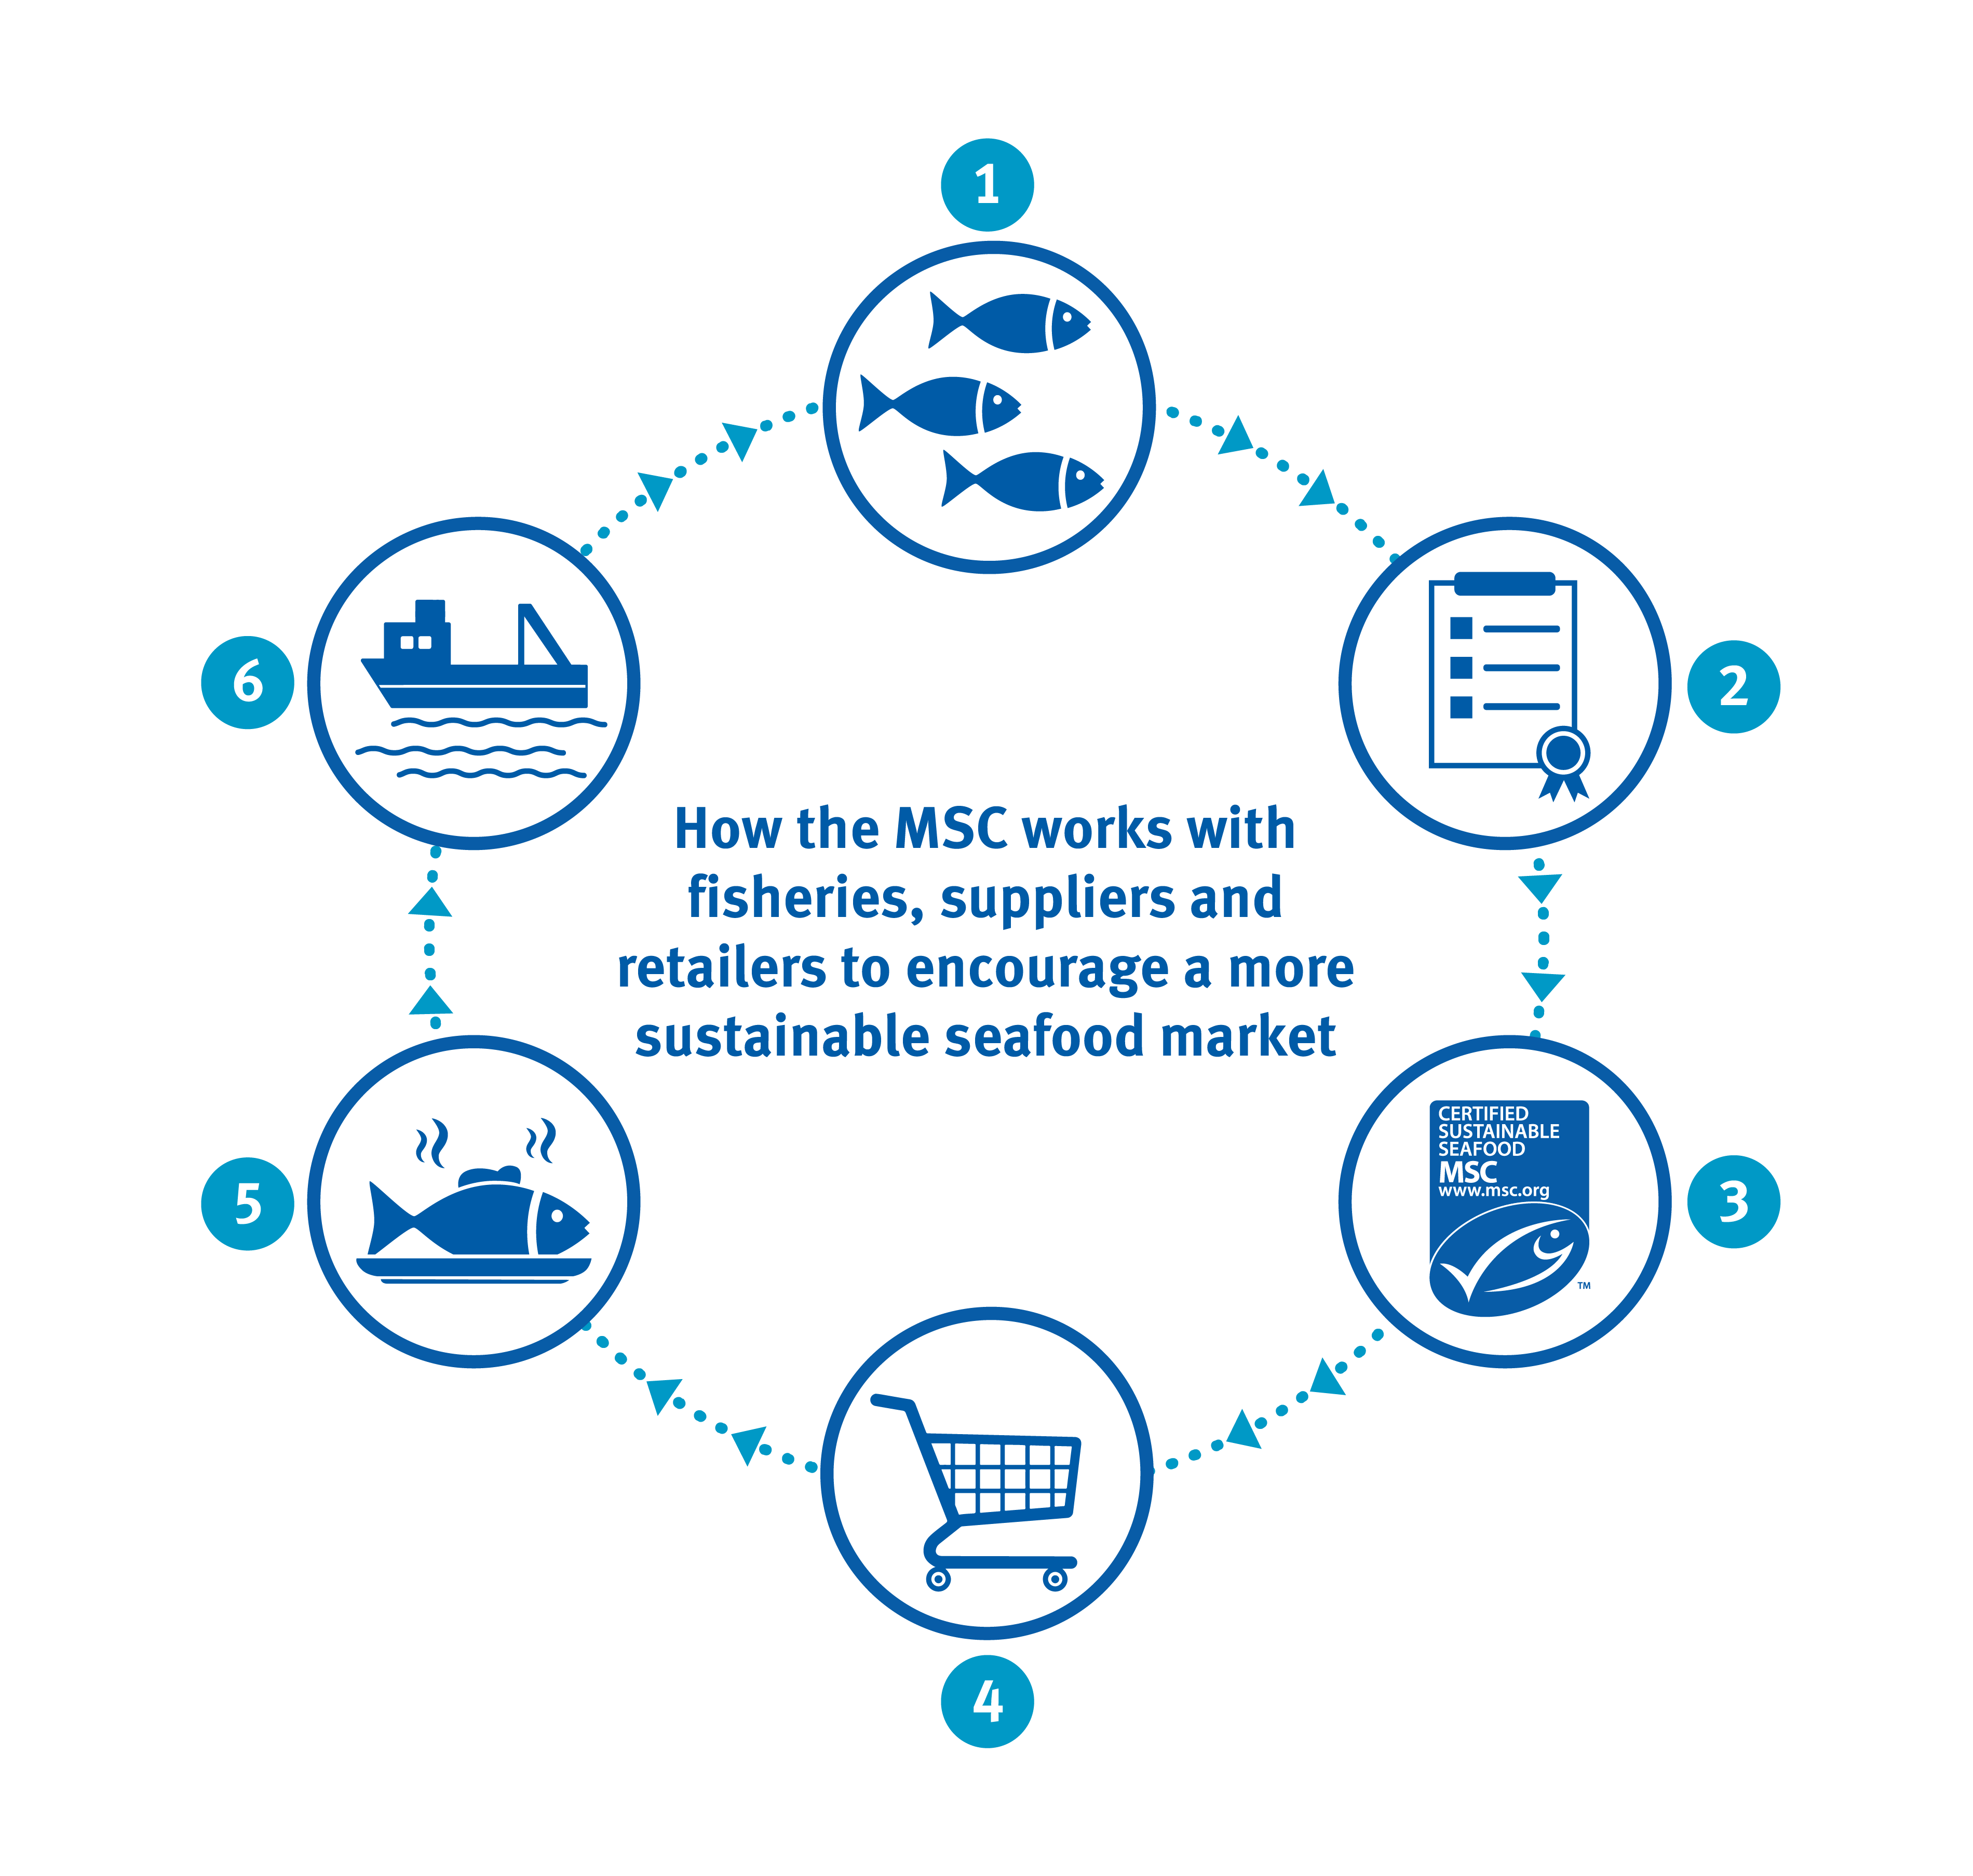 Infographic showing how the MSC works with fisheries suppliers and retailer to encourage a more sustainable seafood market